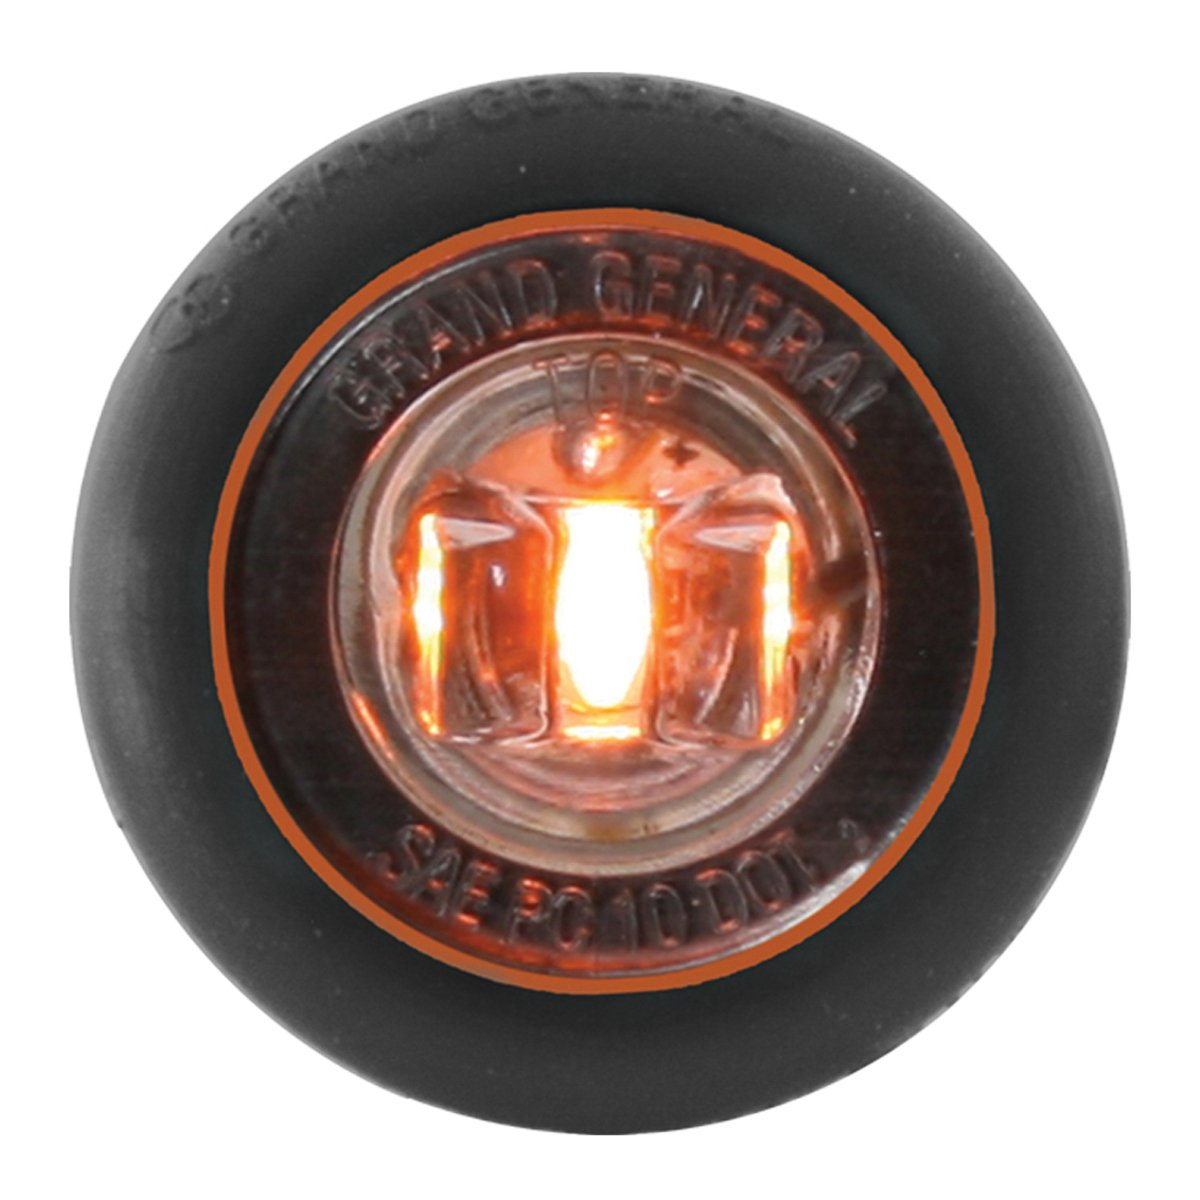 """GG Grand General Grand General 75284 1/"""" Dual Function Mini Wide Angle LED Light for Trucks UTVs White//Clear Towing RVs and more ATVs Trailers"""